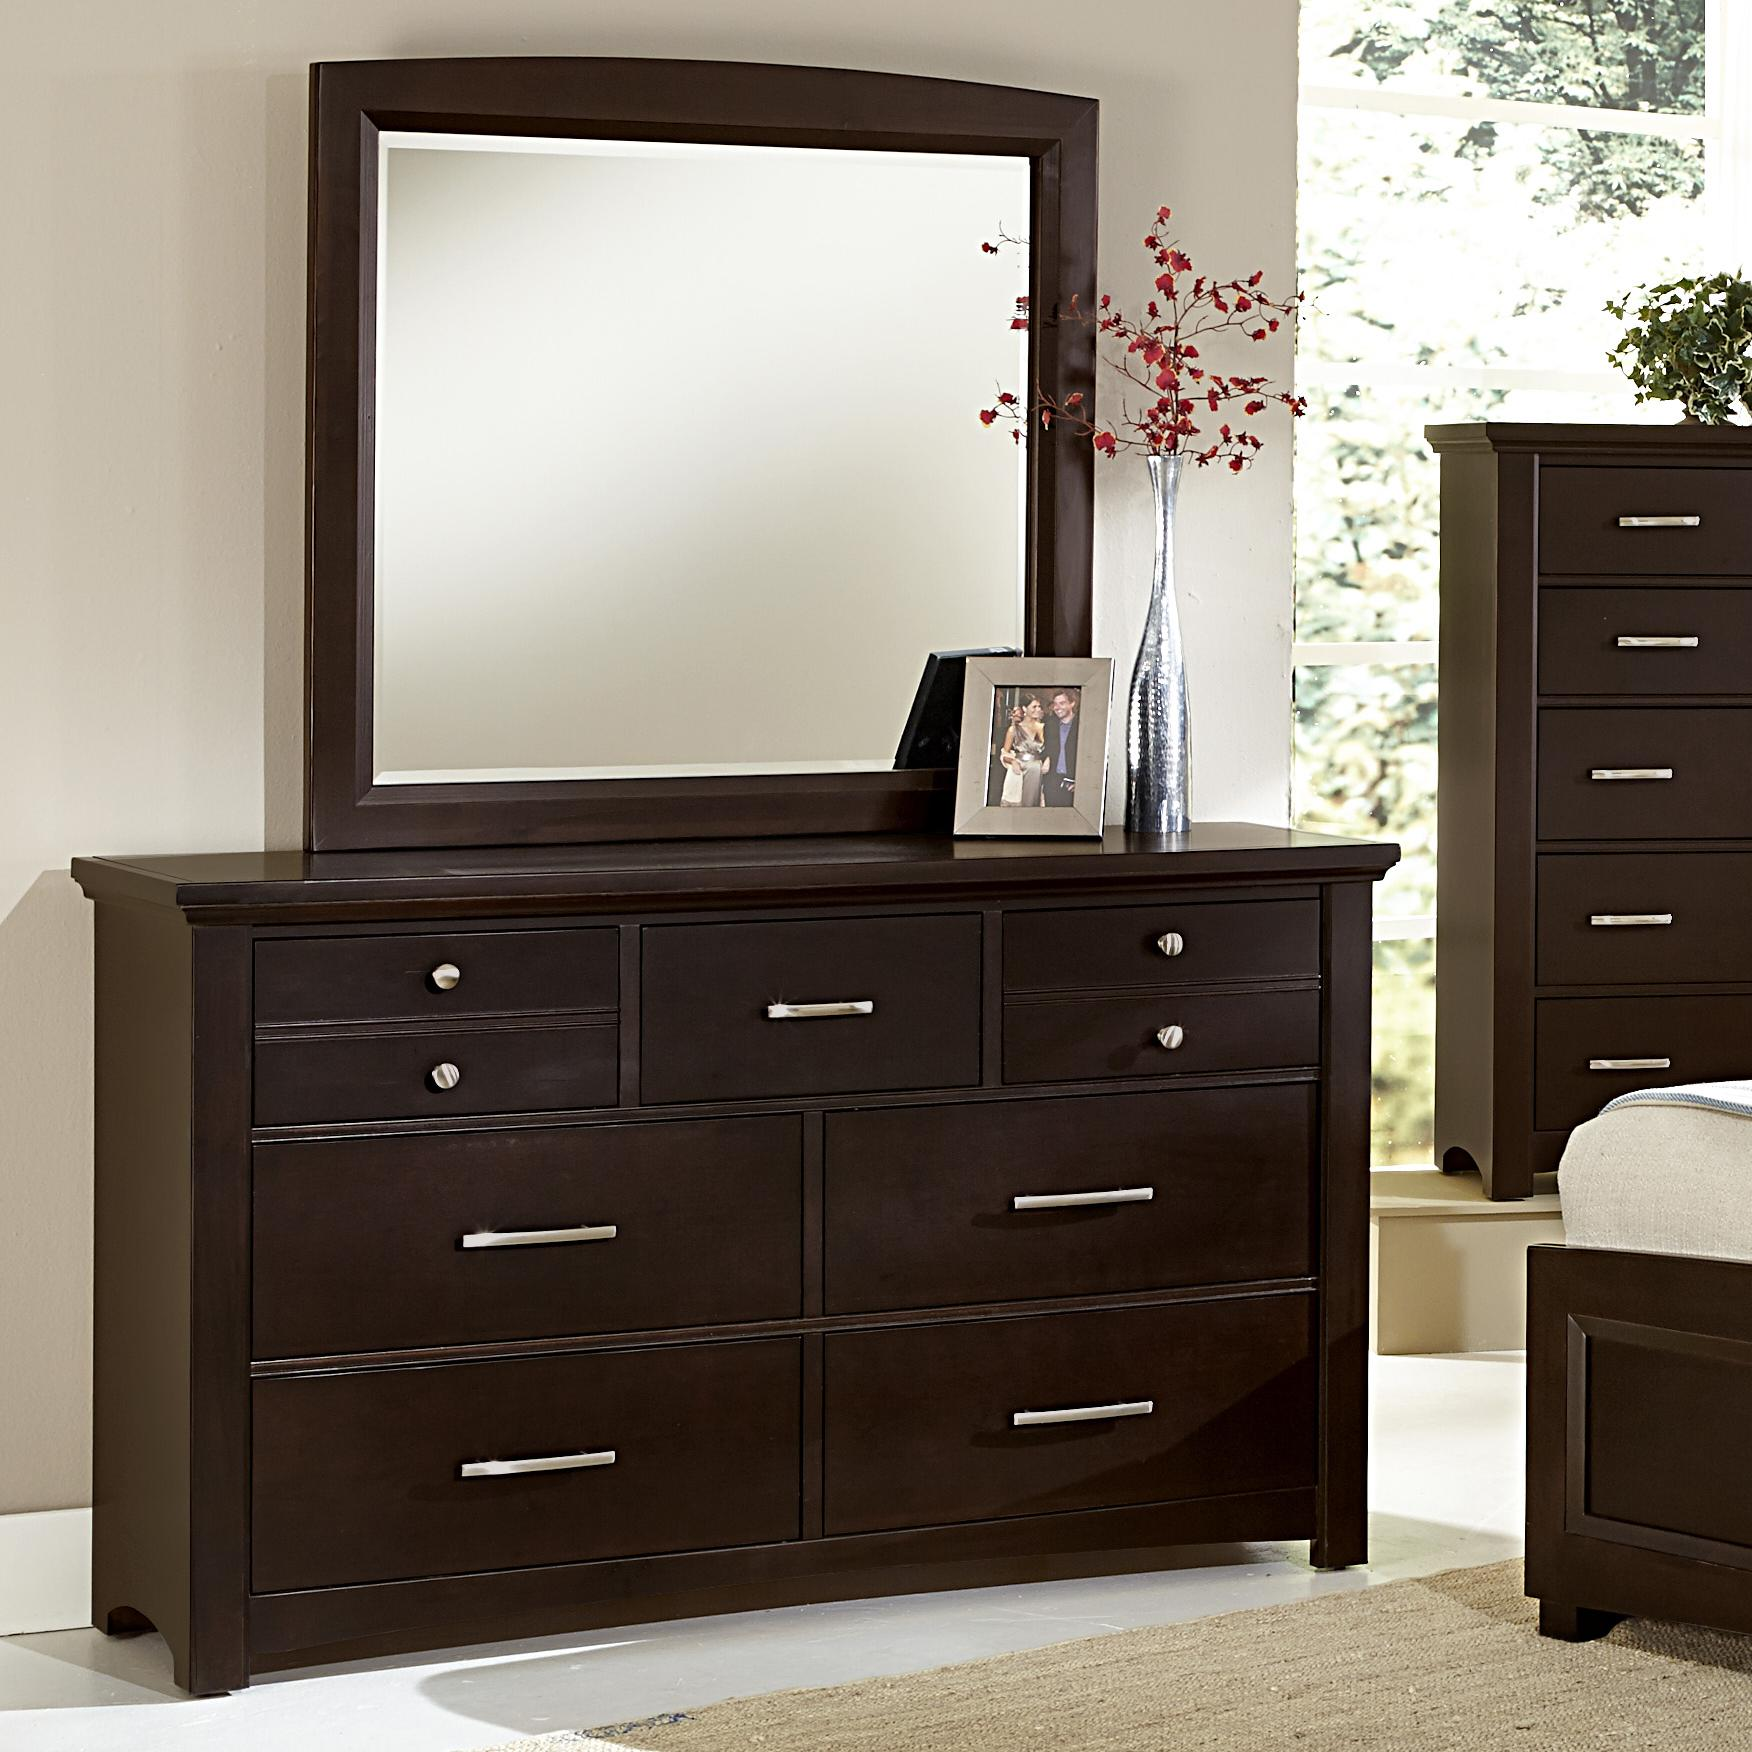 Vaughan Bassett Transitions Dresser Landscape Mirror Belfort Furniture Dresser Mirror Sets